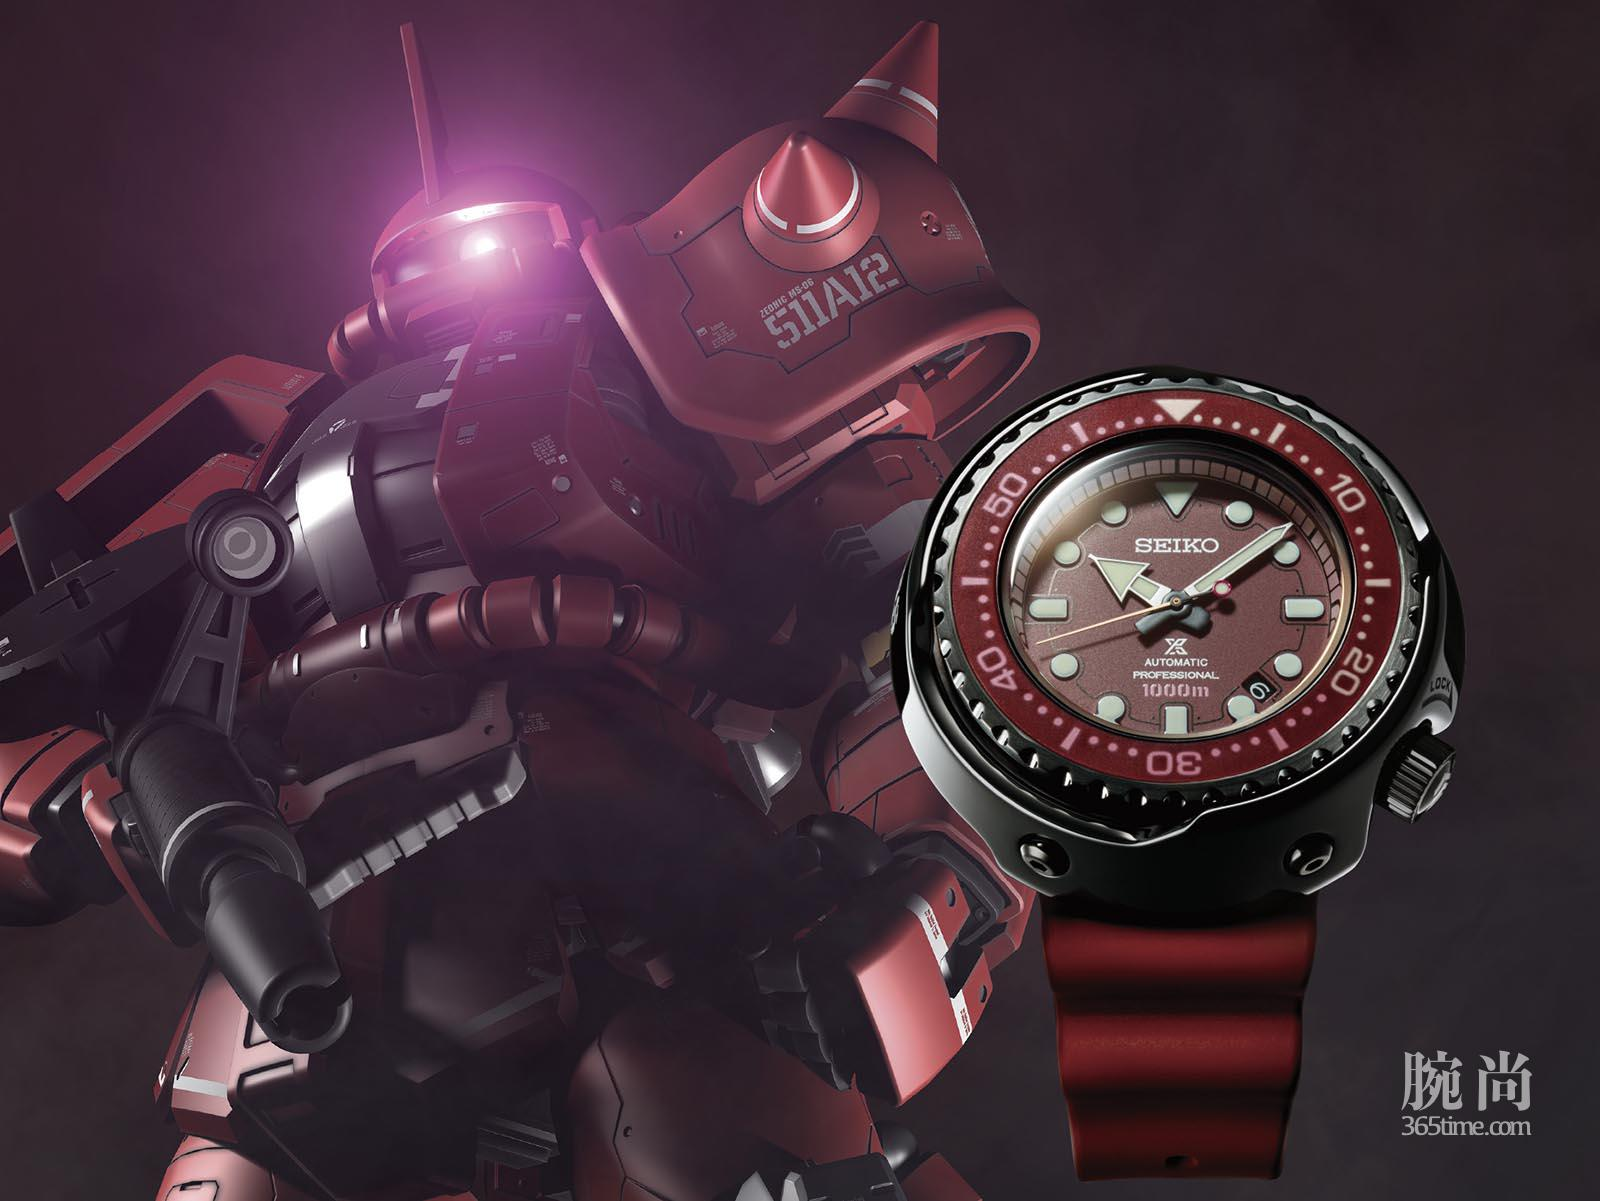 Seiko-Mobile-Suit-Gundam-40th-Anniversary-and-Char-Zaku-Limited-Edition-SLA031J1.jpg